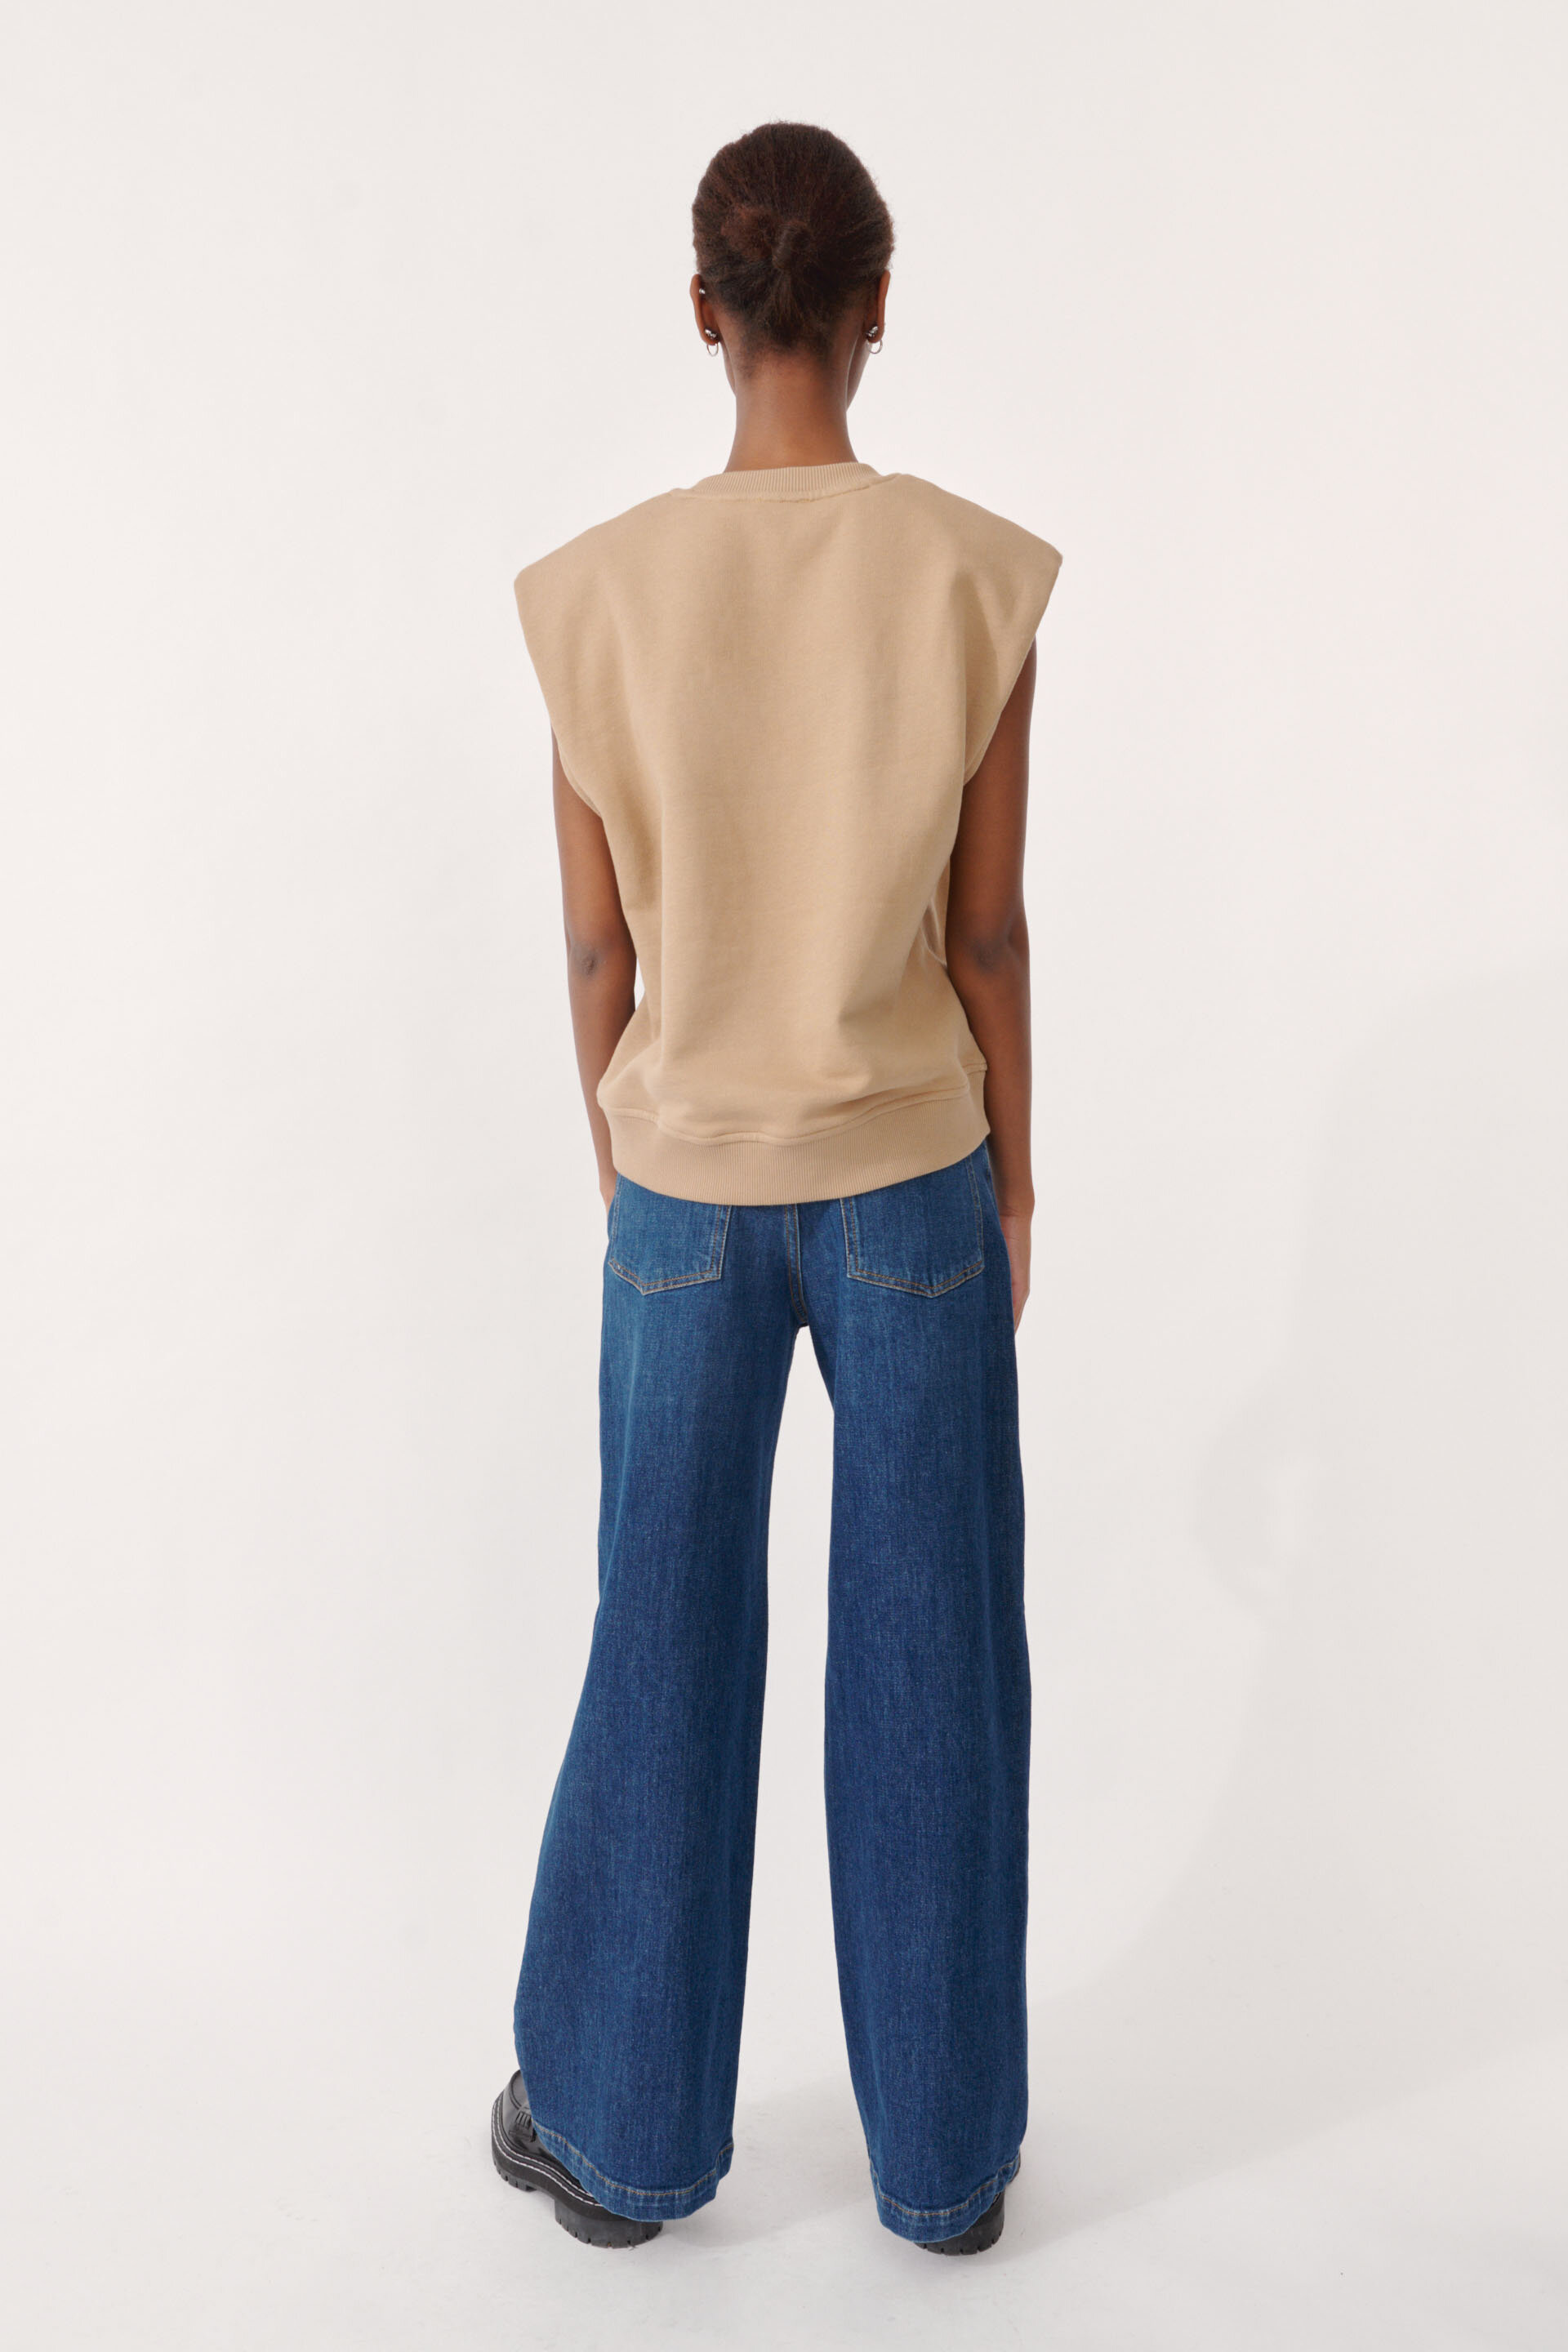 Julio Sweater Camel An oversized sleeveless top with cut-off style sleeves - detail image